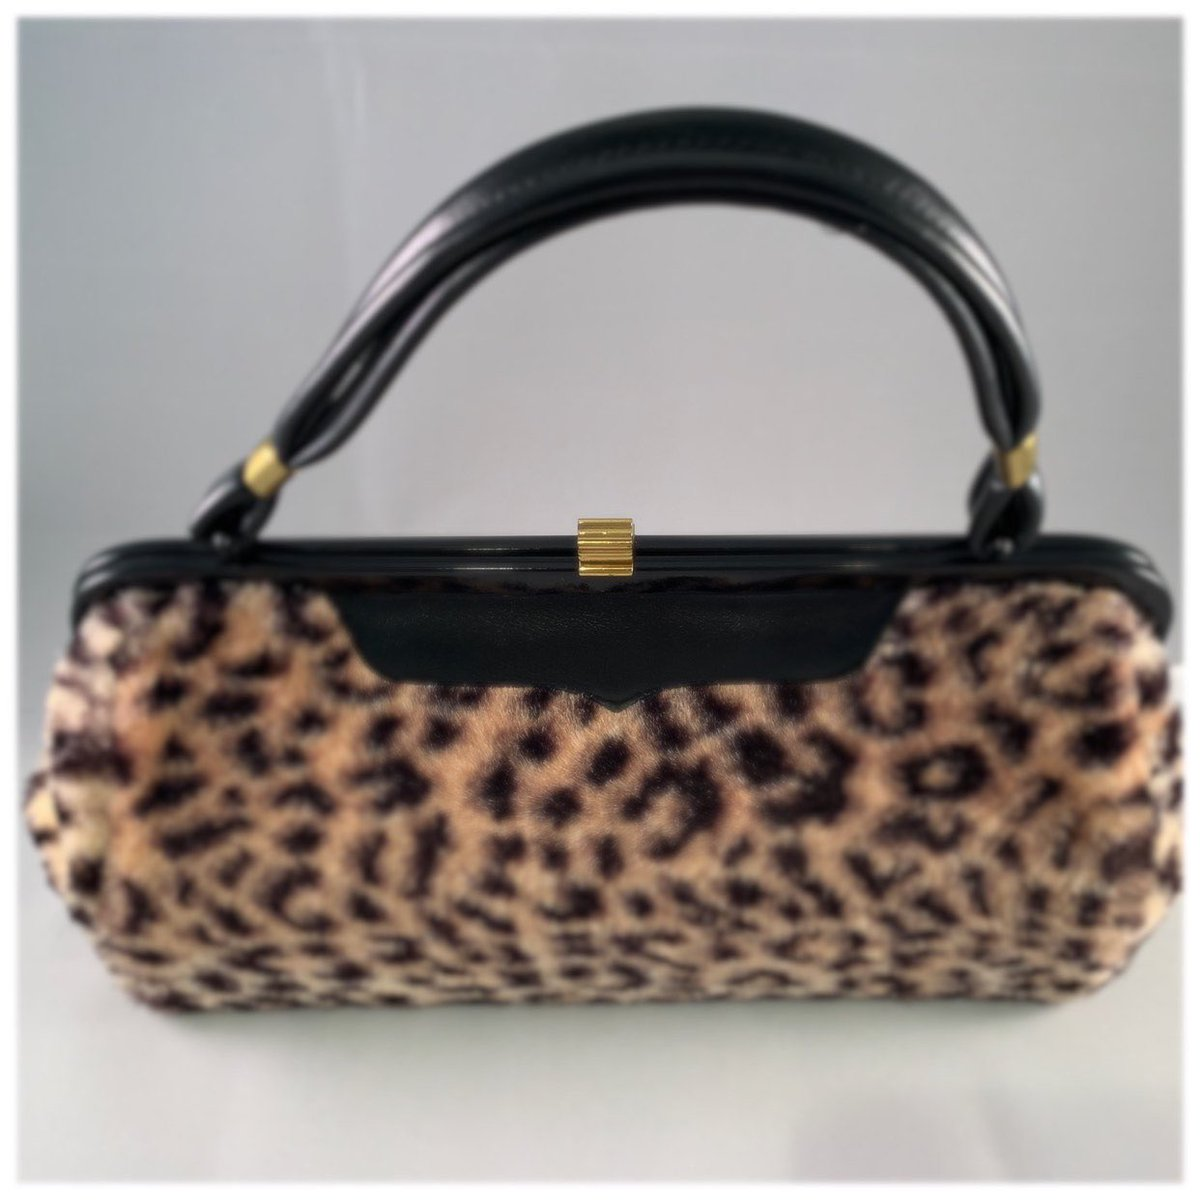 Excited to share the latest addition to my shop: Vintage Faux Fur leopard print hand bag #sammiesuniquefinds https://etsy.me/2Iw0s5spic.twitter.com/v65fX2rXMI